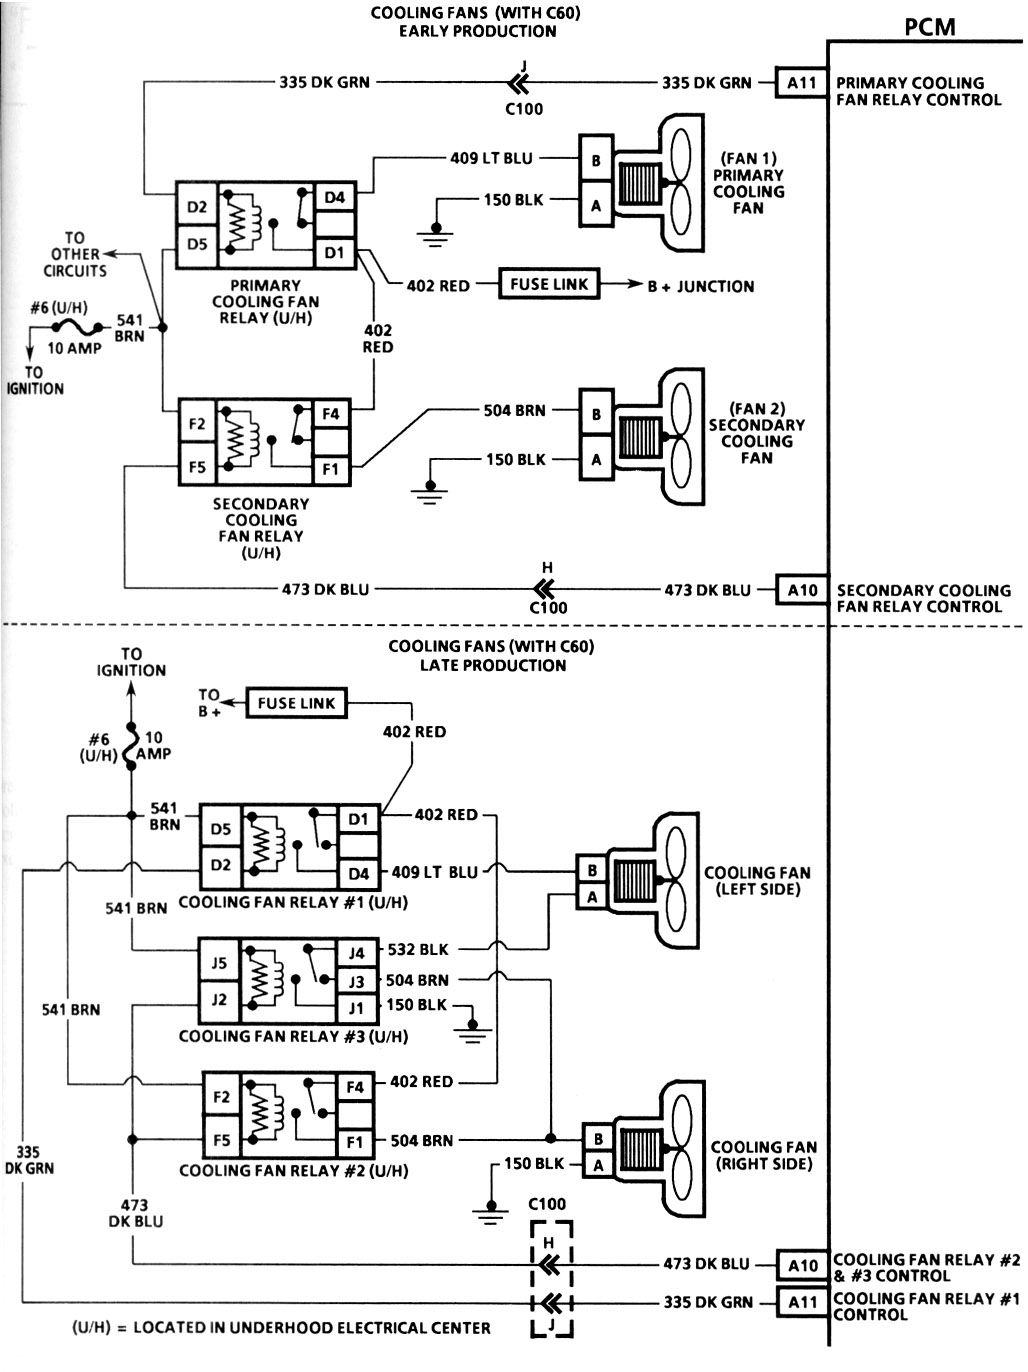 1995 Chevy S10 Wiring Diagram Image Details 2000 Camaro Cooling Fan